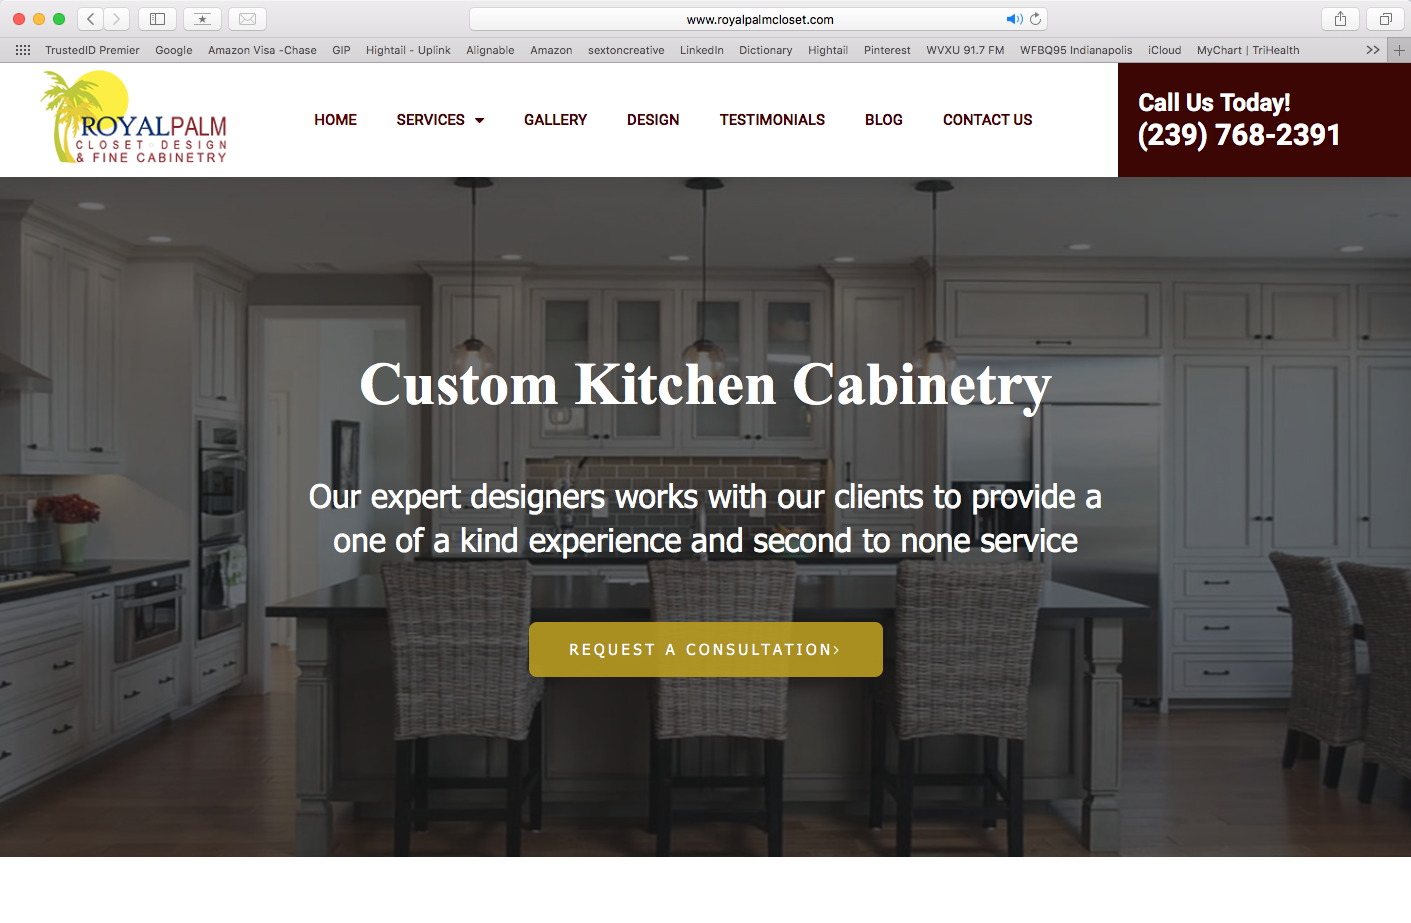 website-service-design-mobile-optimized-los-alamitos-ca